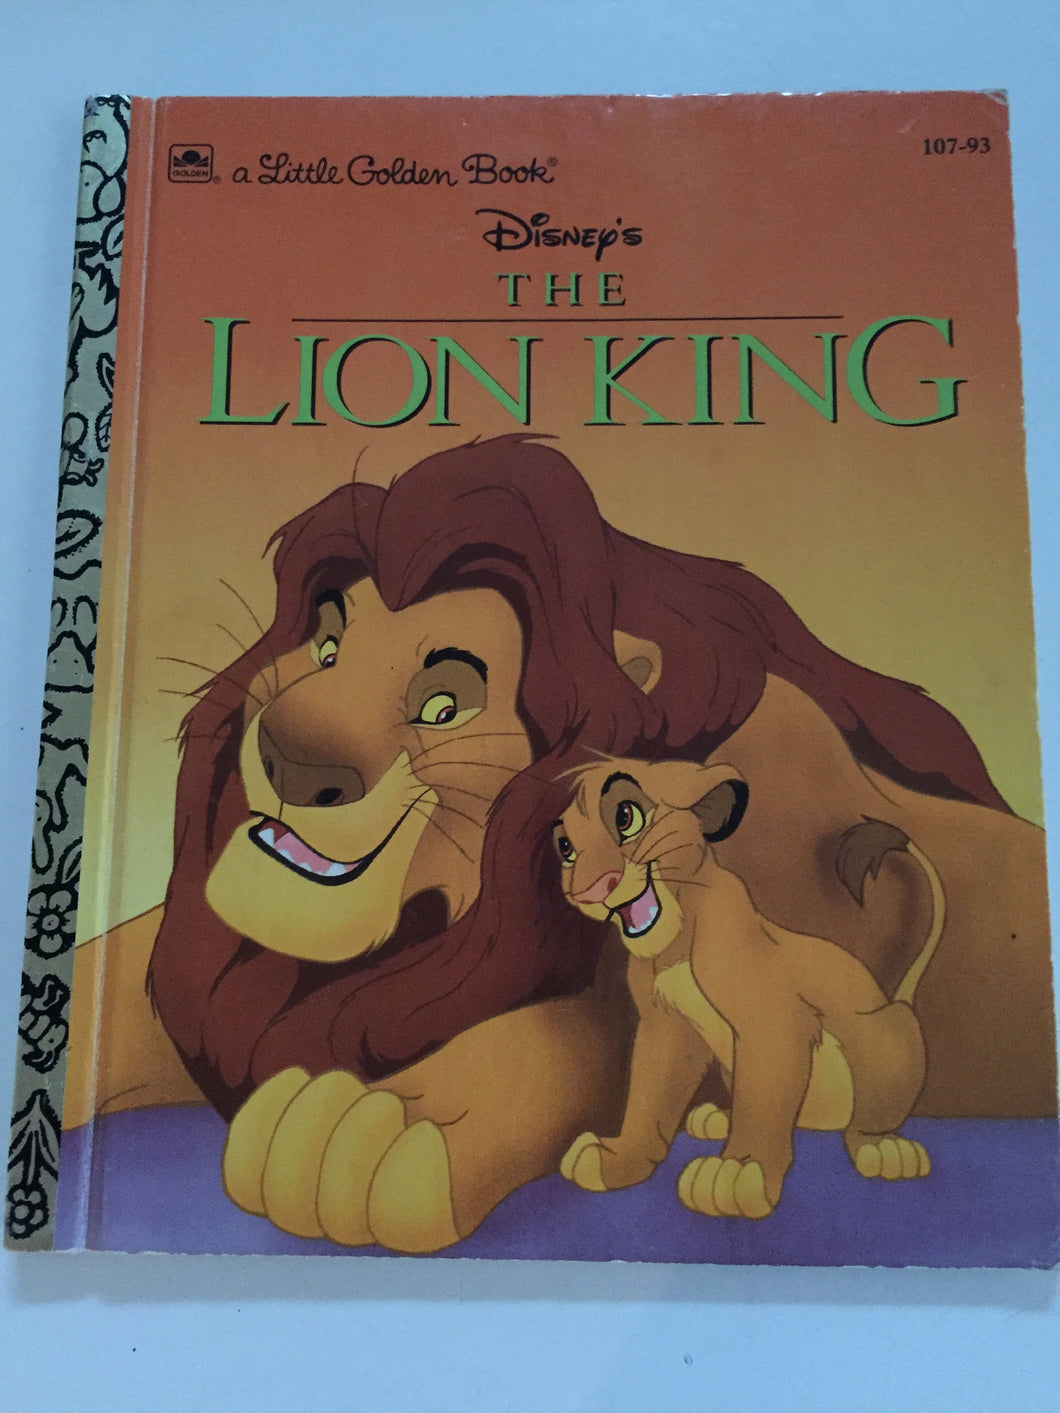 Disney's The Lion King - Slick Cat Books